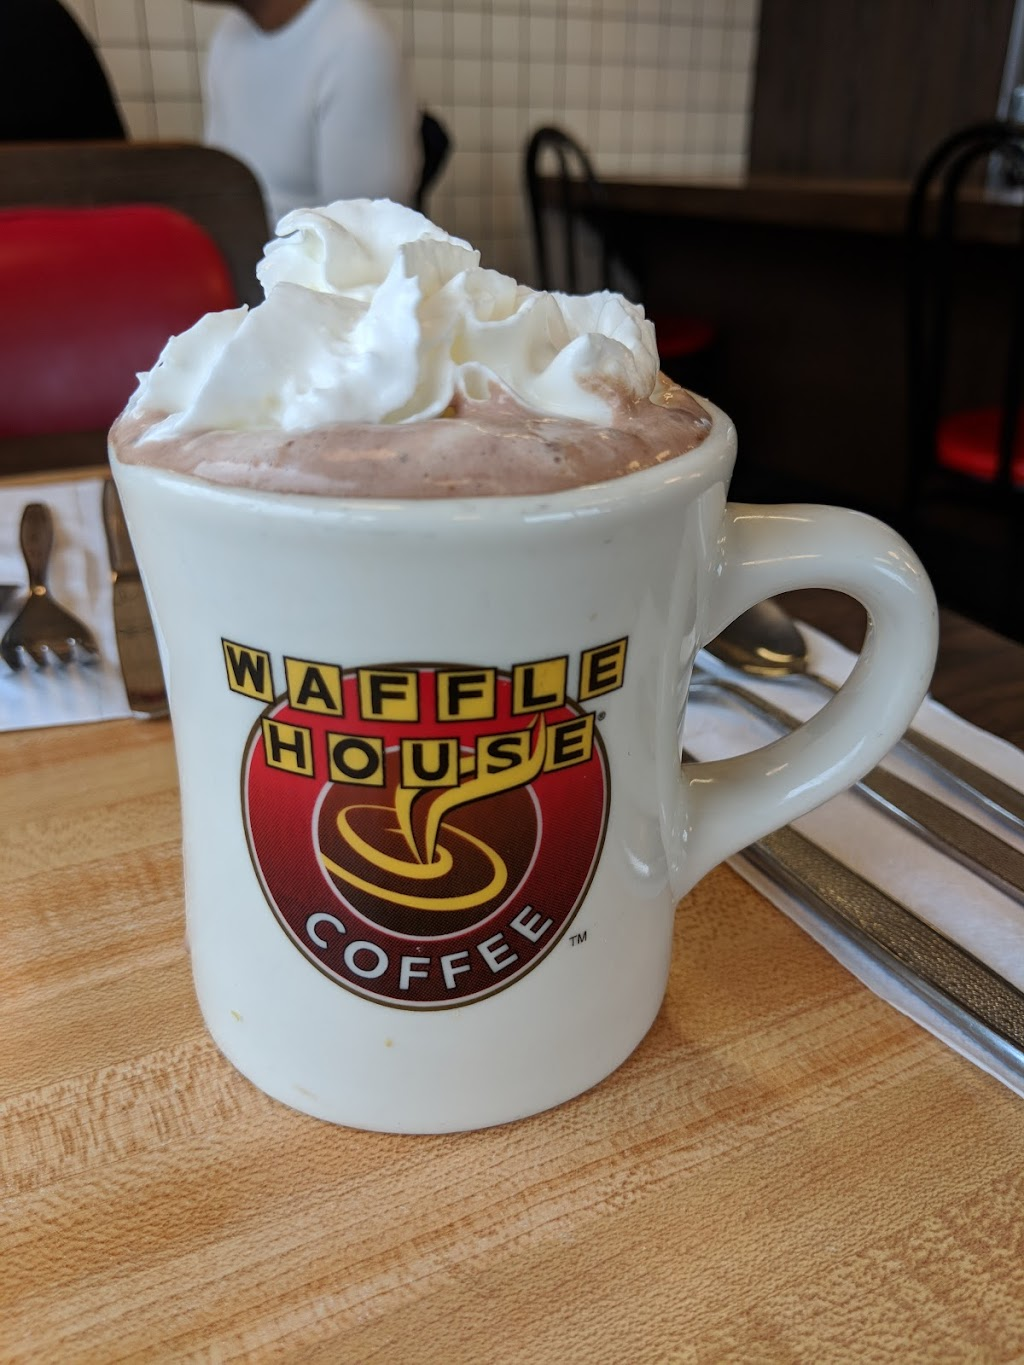 Waffle House | meal takeaway | 401 E Gregory St, Pensacola, FL 32502, USA | 8504388805 OR +1 850-438-8805